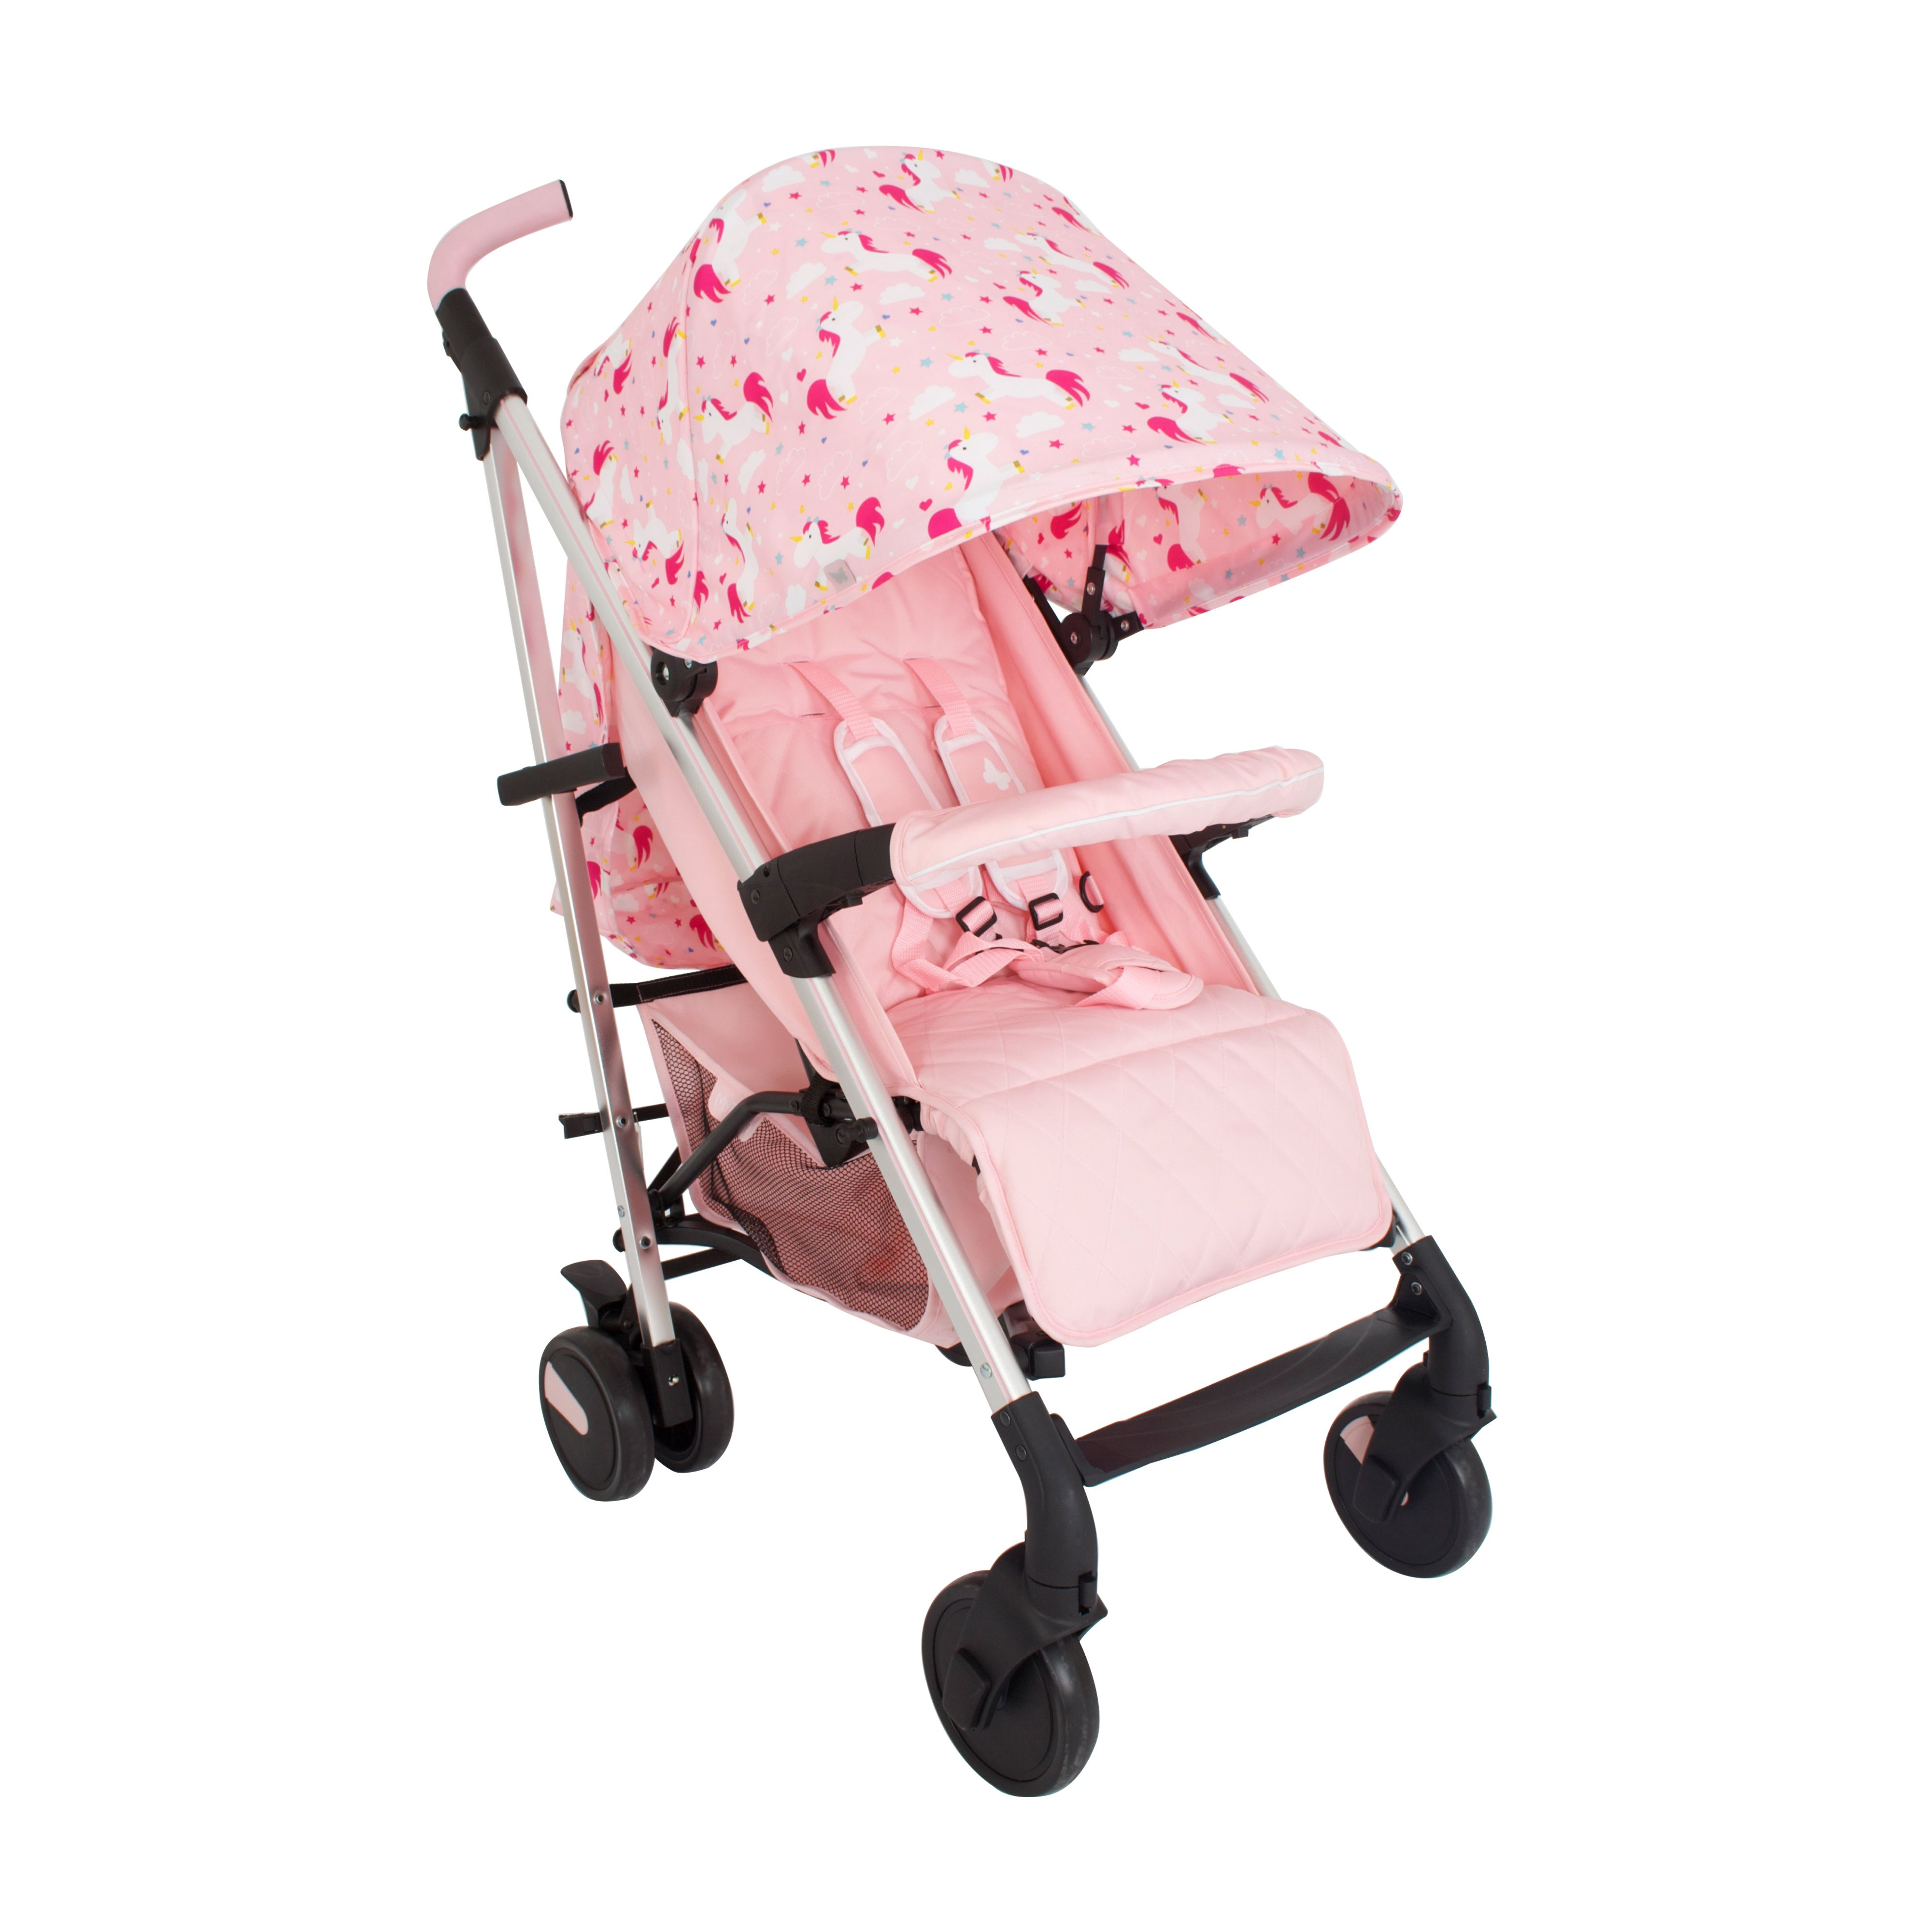 Best Lightweight Travel System From Birth Katie Piper Believe Mb51 Pink Unicorns Stroller Baby